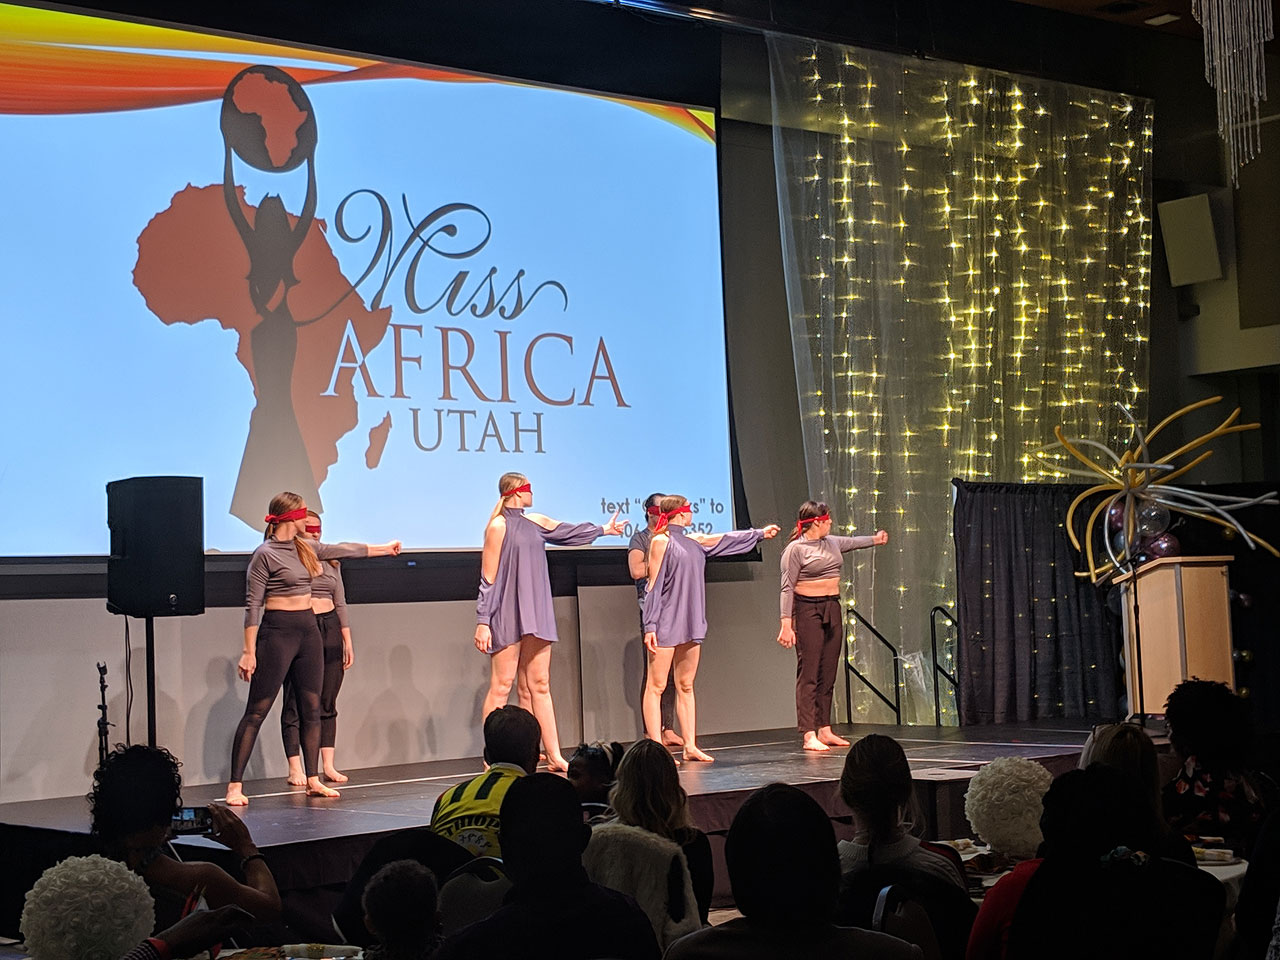 SLCC Dance Company at Miss Africa Utah pageant